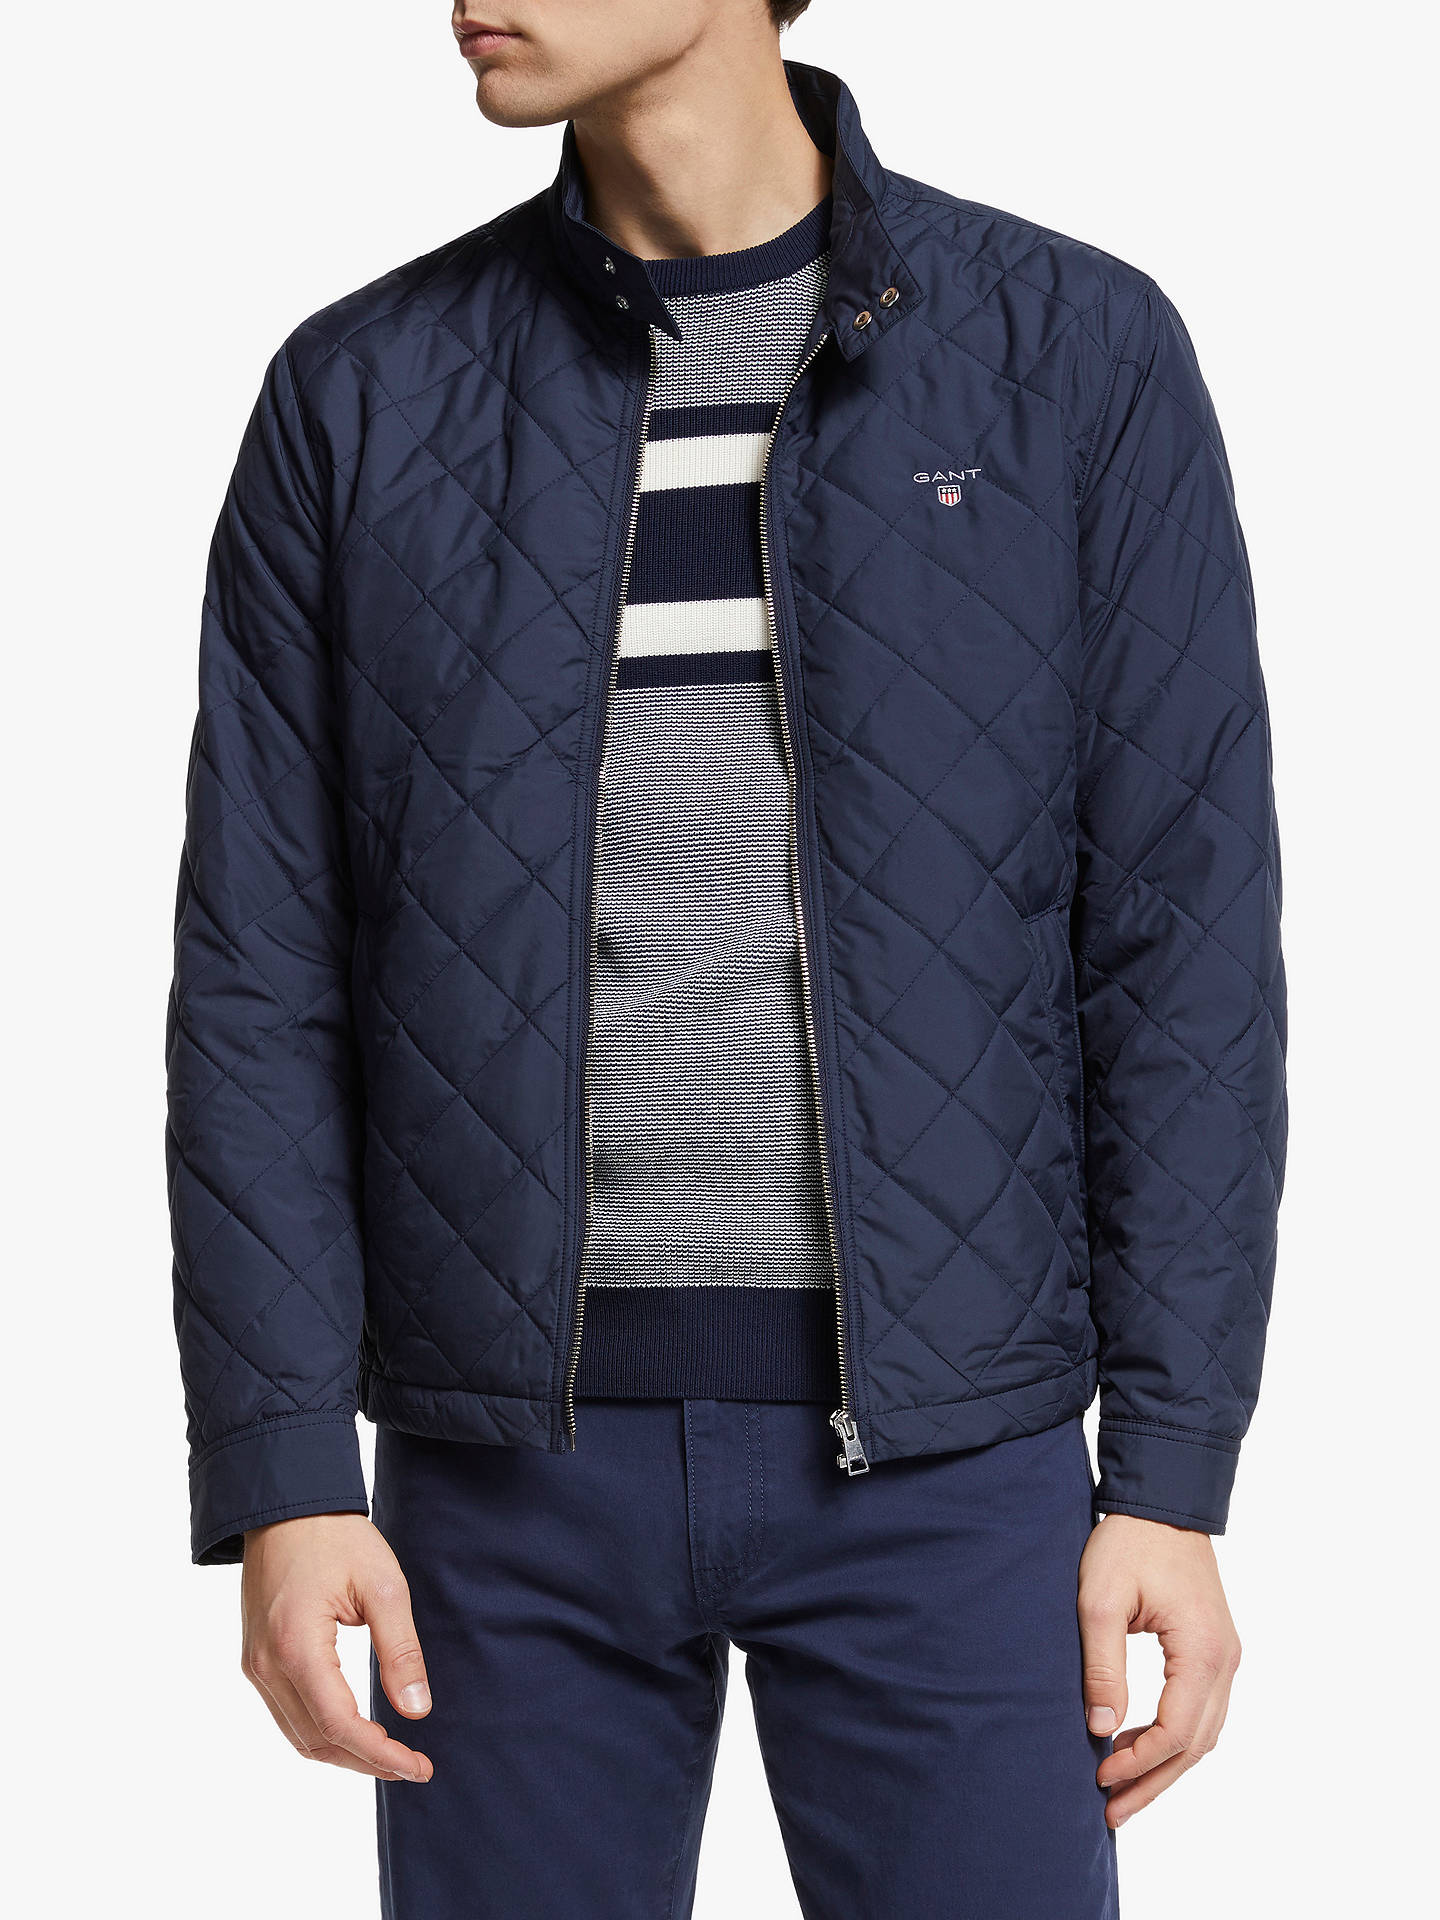 best service 0c0e4 a05b9 GANT The Quilted Windcheater Jacket at John Lewis & Partners